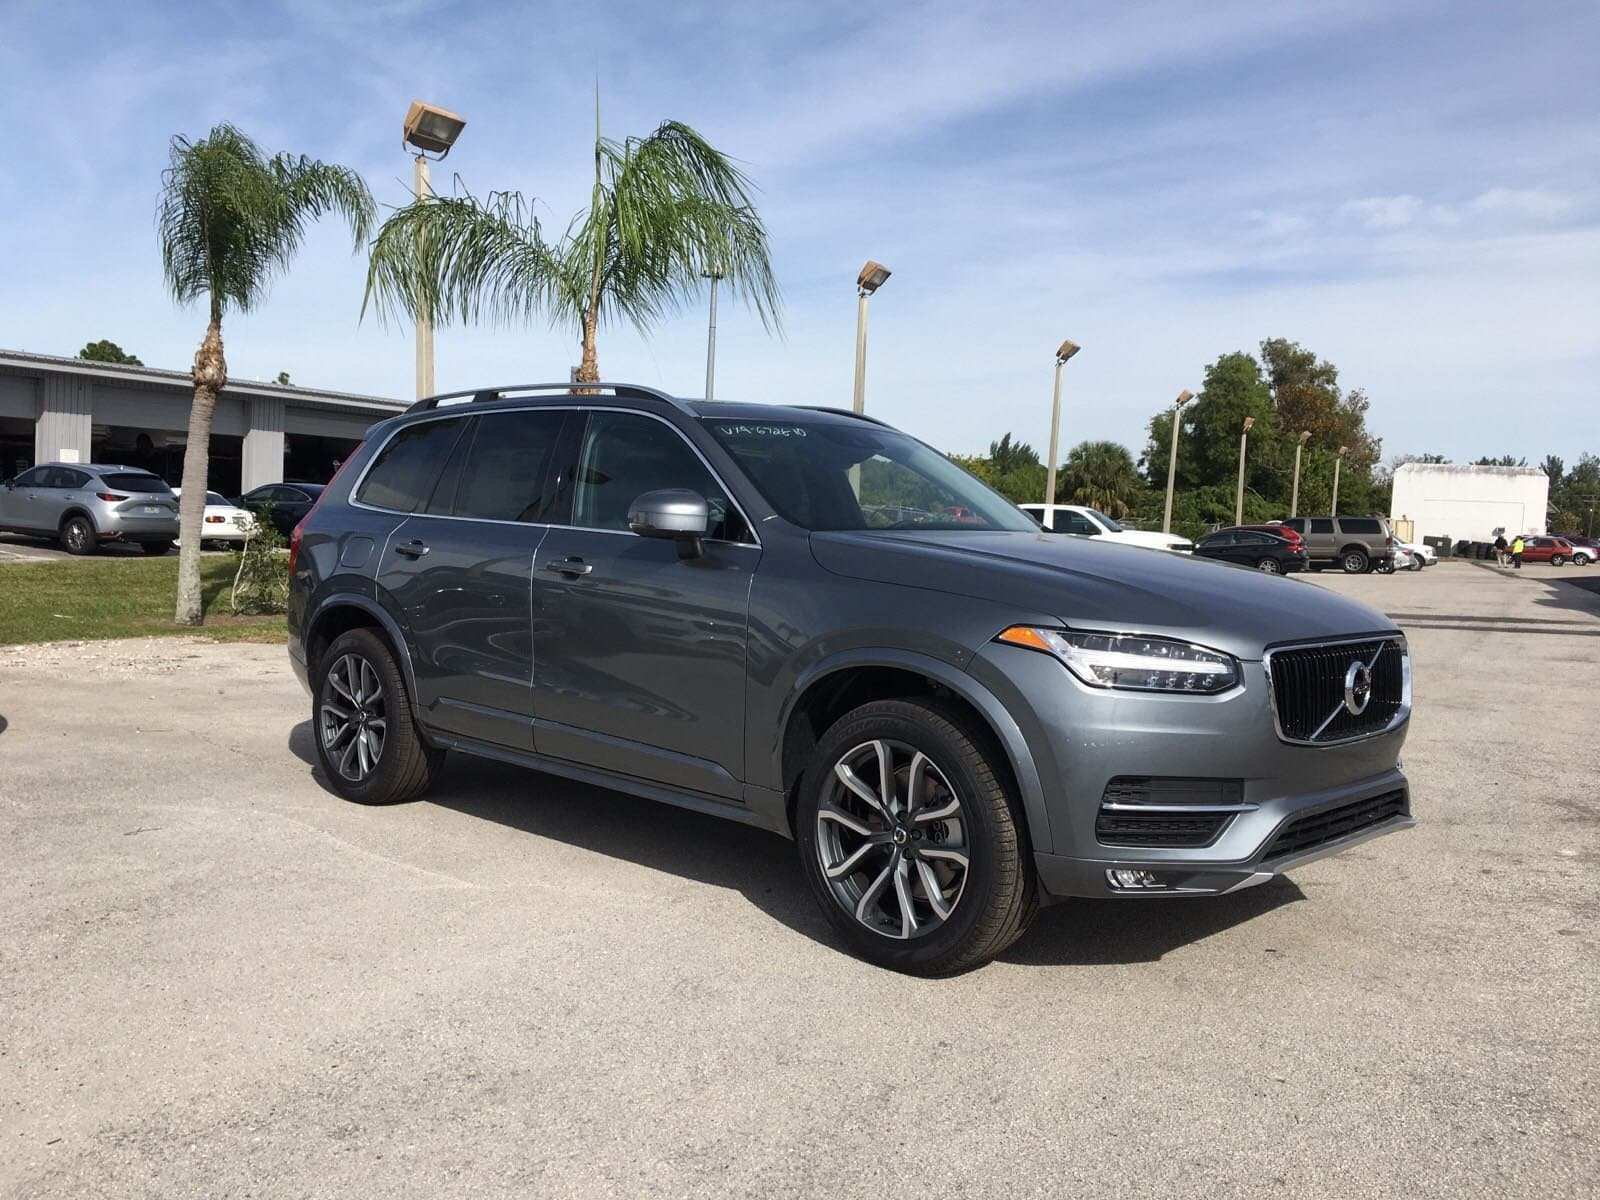 68 Concept of 2019 Volvo Xc90 T5 Momentum Performance And New Engine Performance and New Engine with 2019 Volvo Xc90 T5 Momentum Performance And New Engine